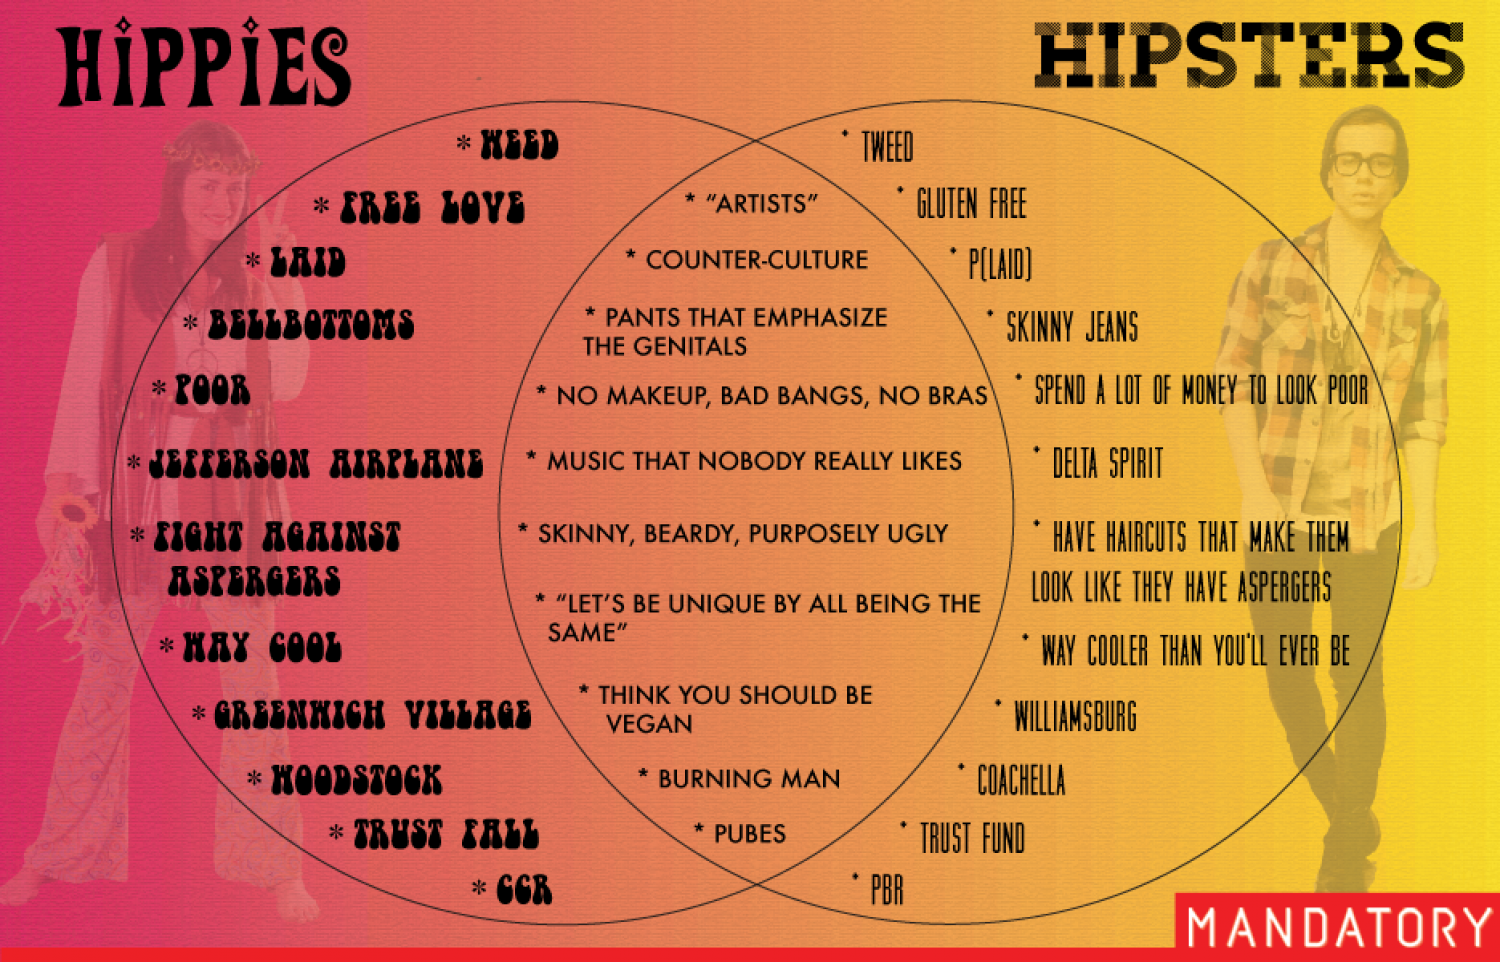 Hippies vs hipsters a venn diagram visual hipsters a venn diagram infographic pooptronica